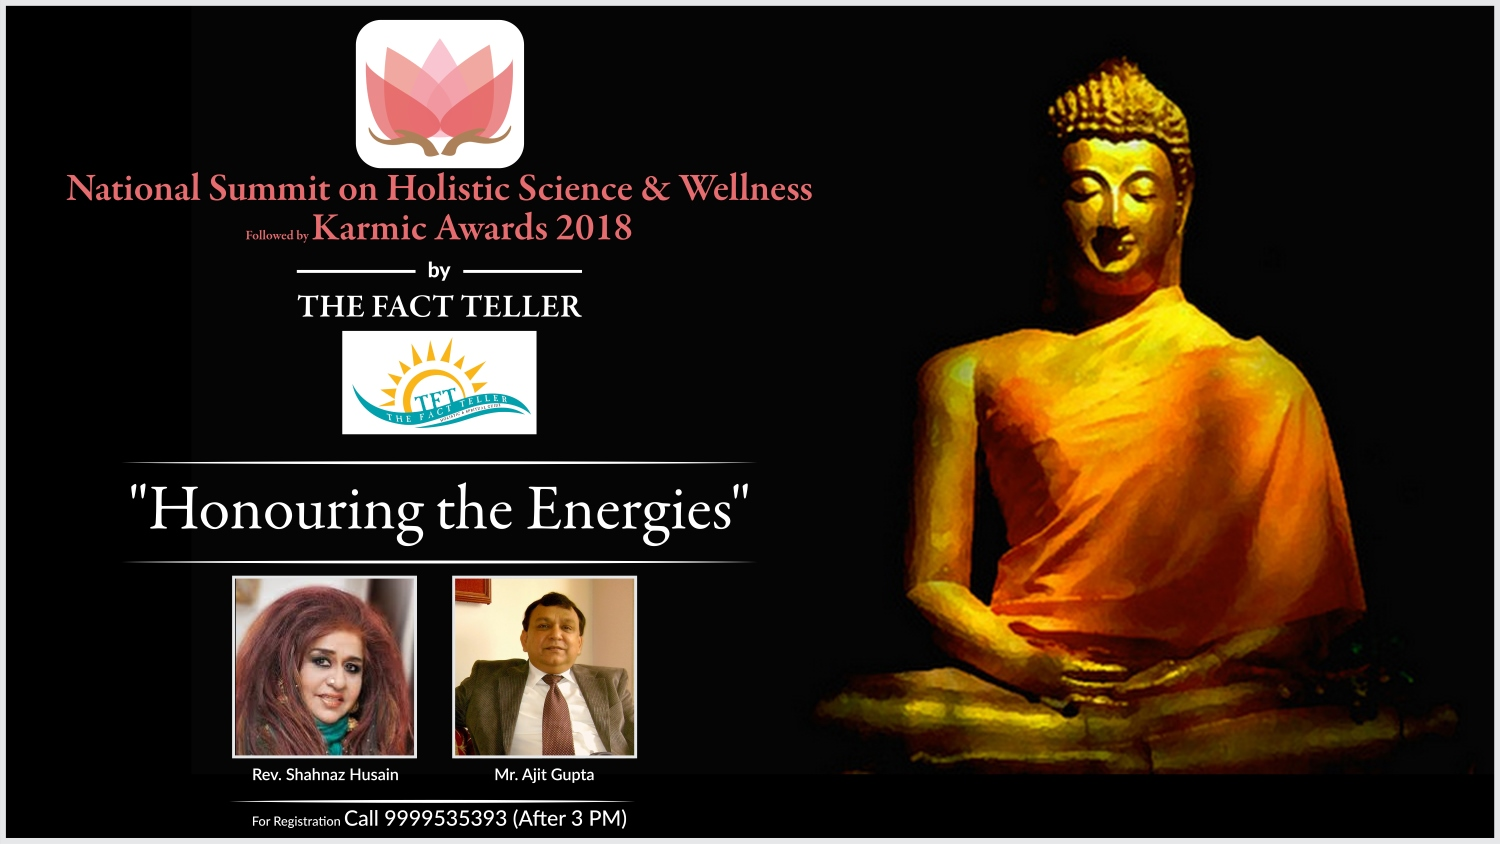 the fact teller magazine 1 - National Summit on Holistic Sciences & Wellness followed by Karmic Awards 2018 - A Day for Peace & Knowledge by The Fact Teller Magazine